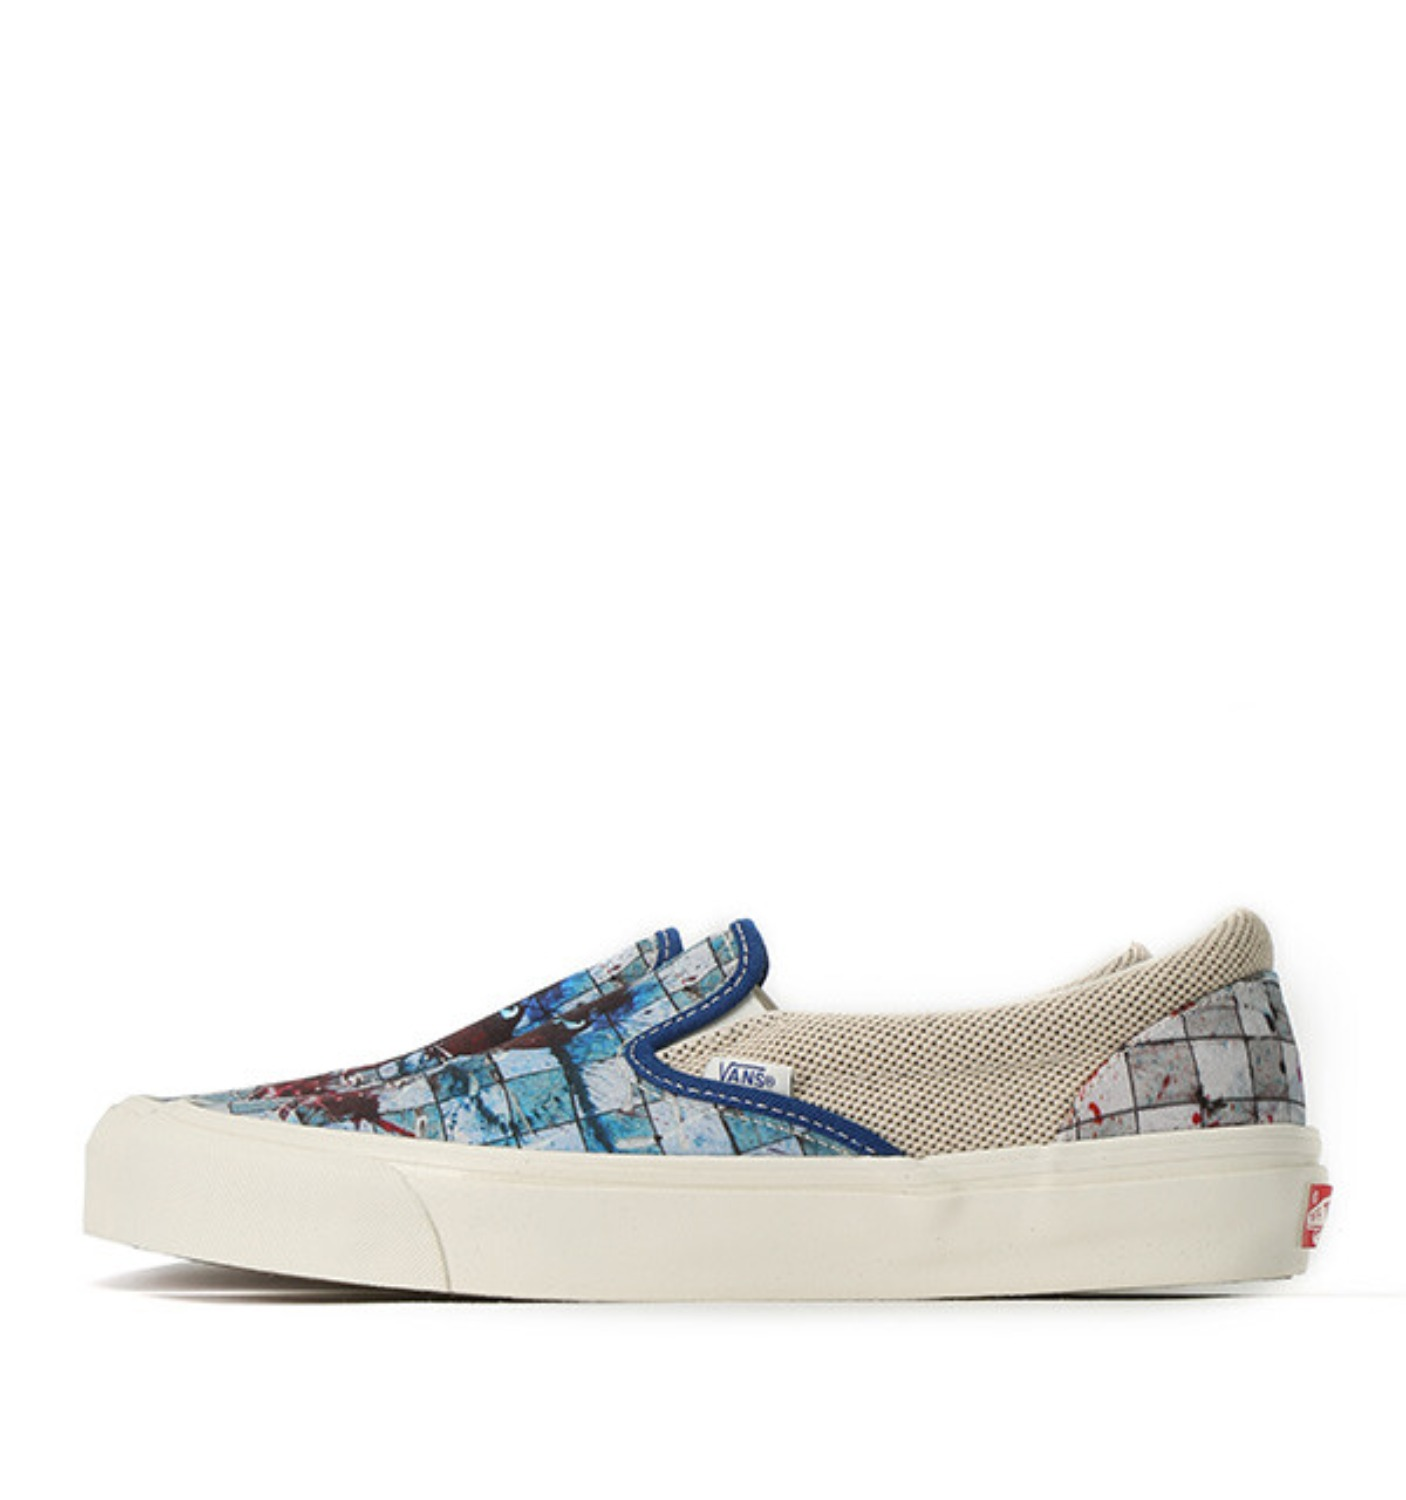 OG SLIP ON LX RALPH CHECKERBOARD SPLATTER